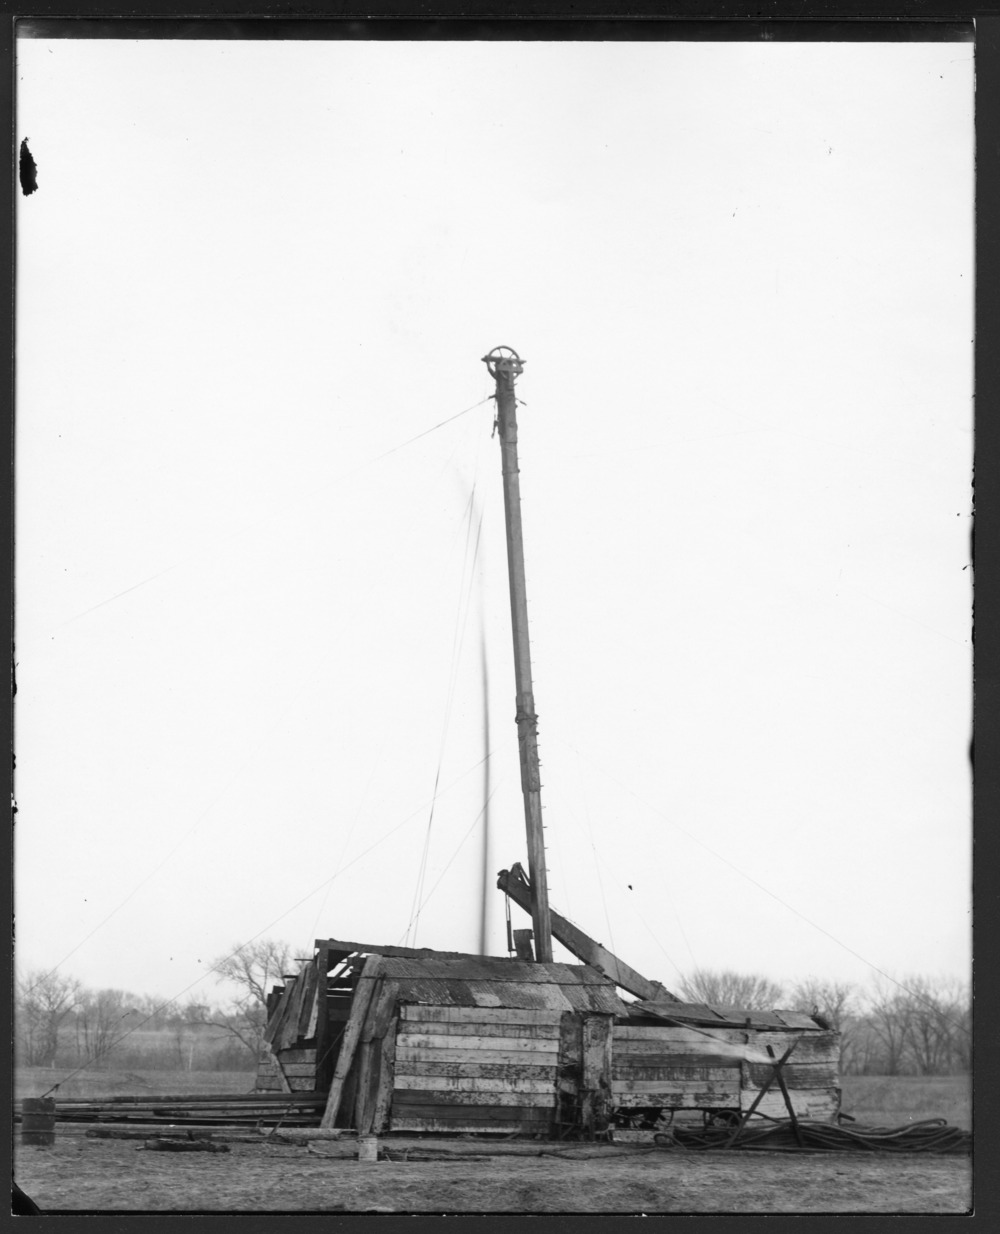 Views of the Allen County petroleum industry - 1